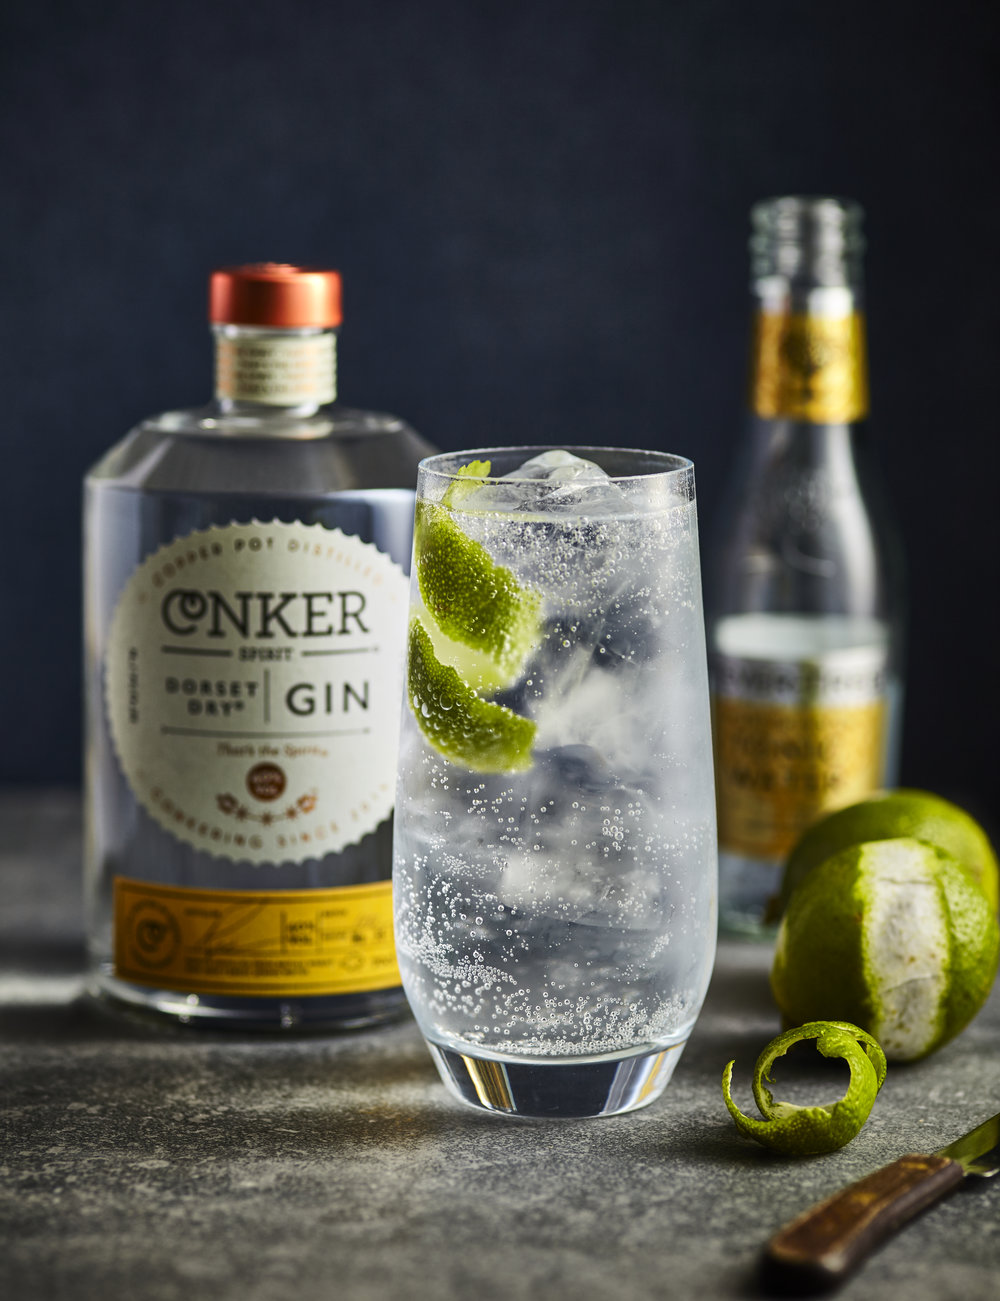 conker gin and tonic with lime peel twist garnish